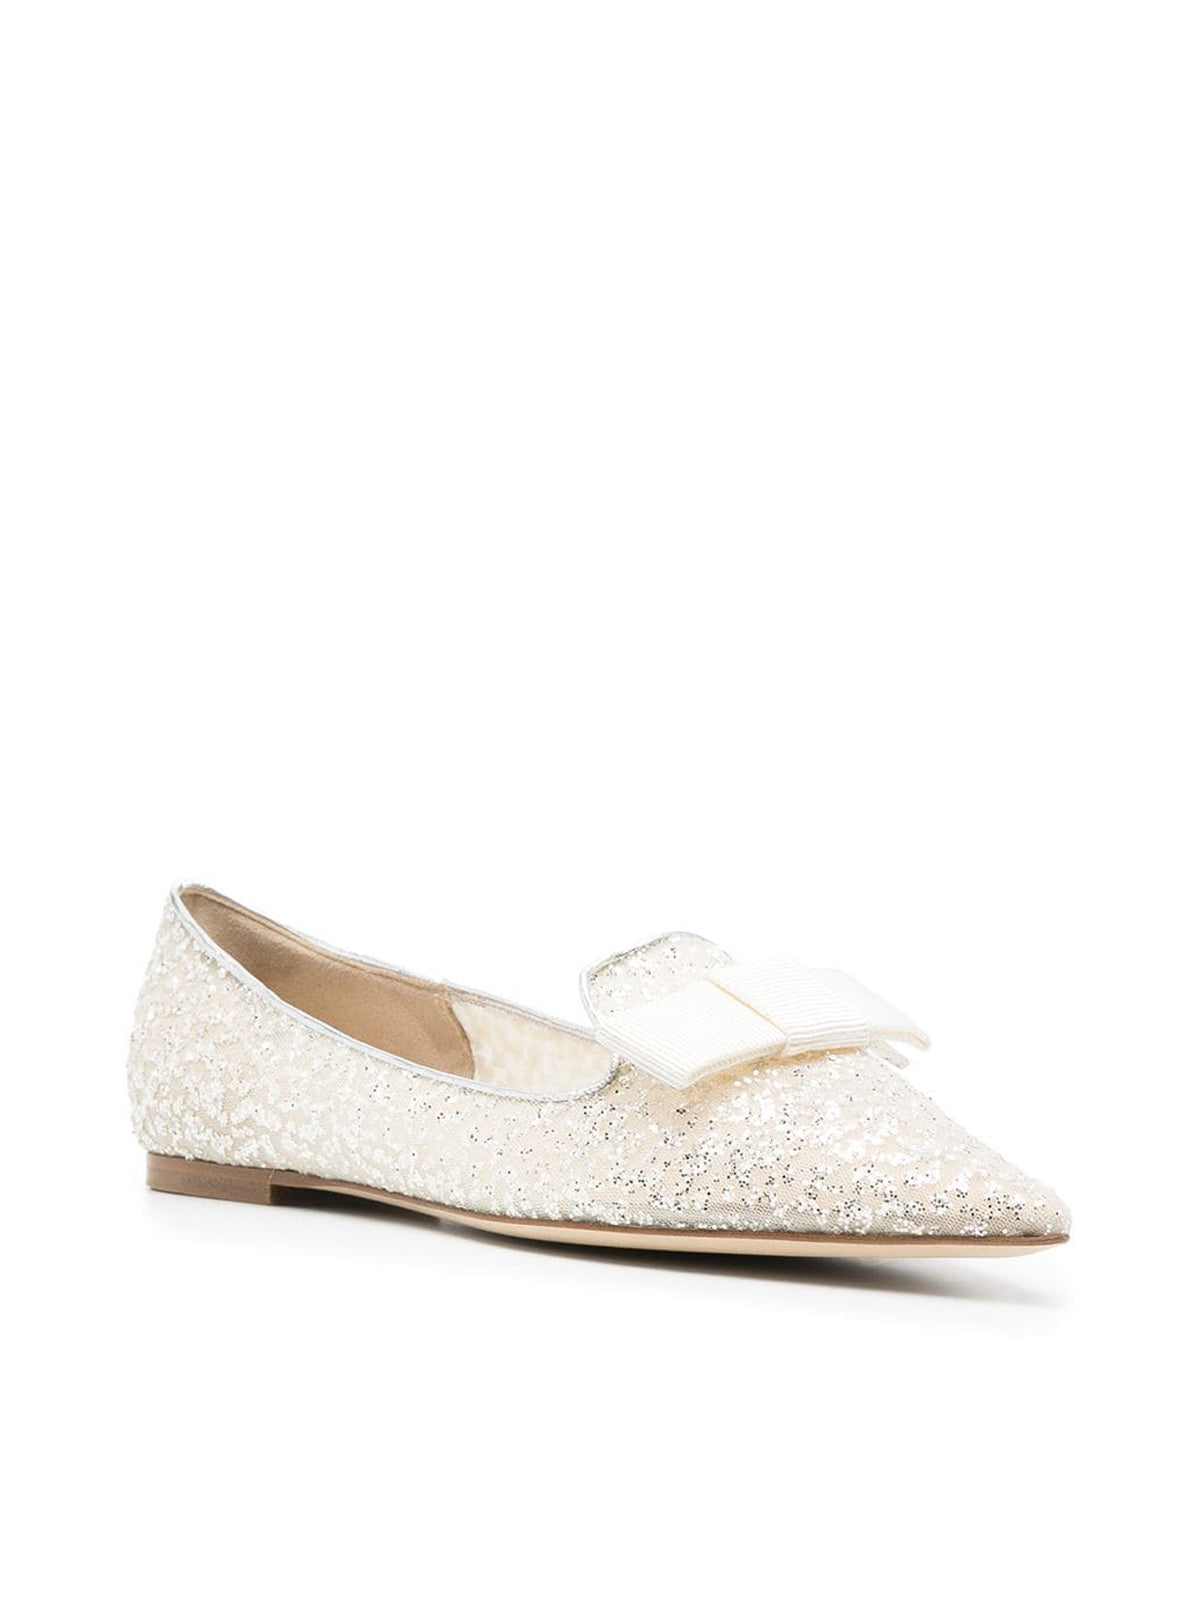 glitter-embellished pointed-toe loafers